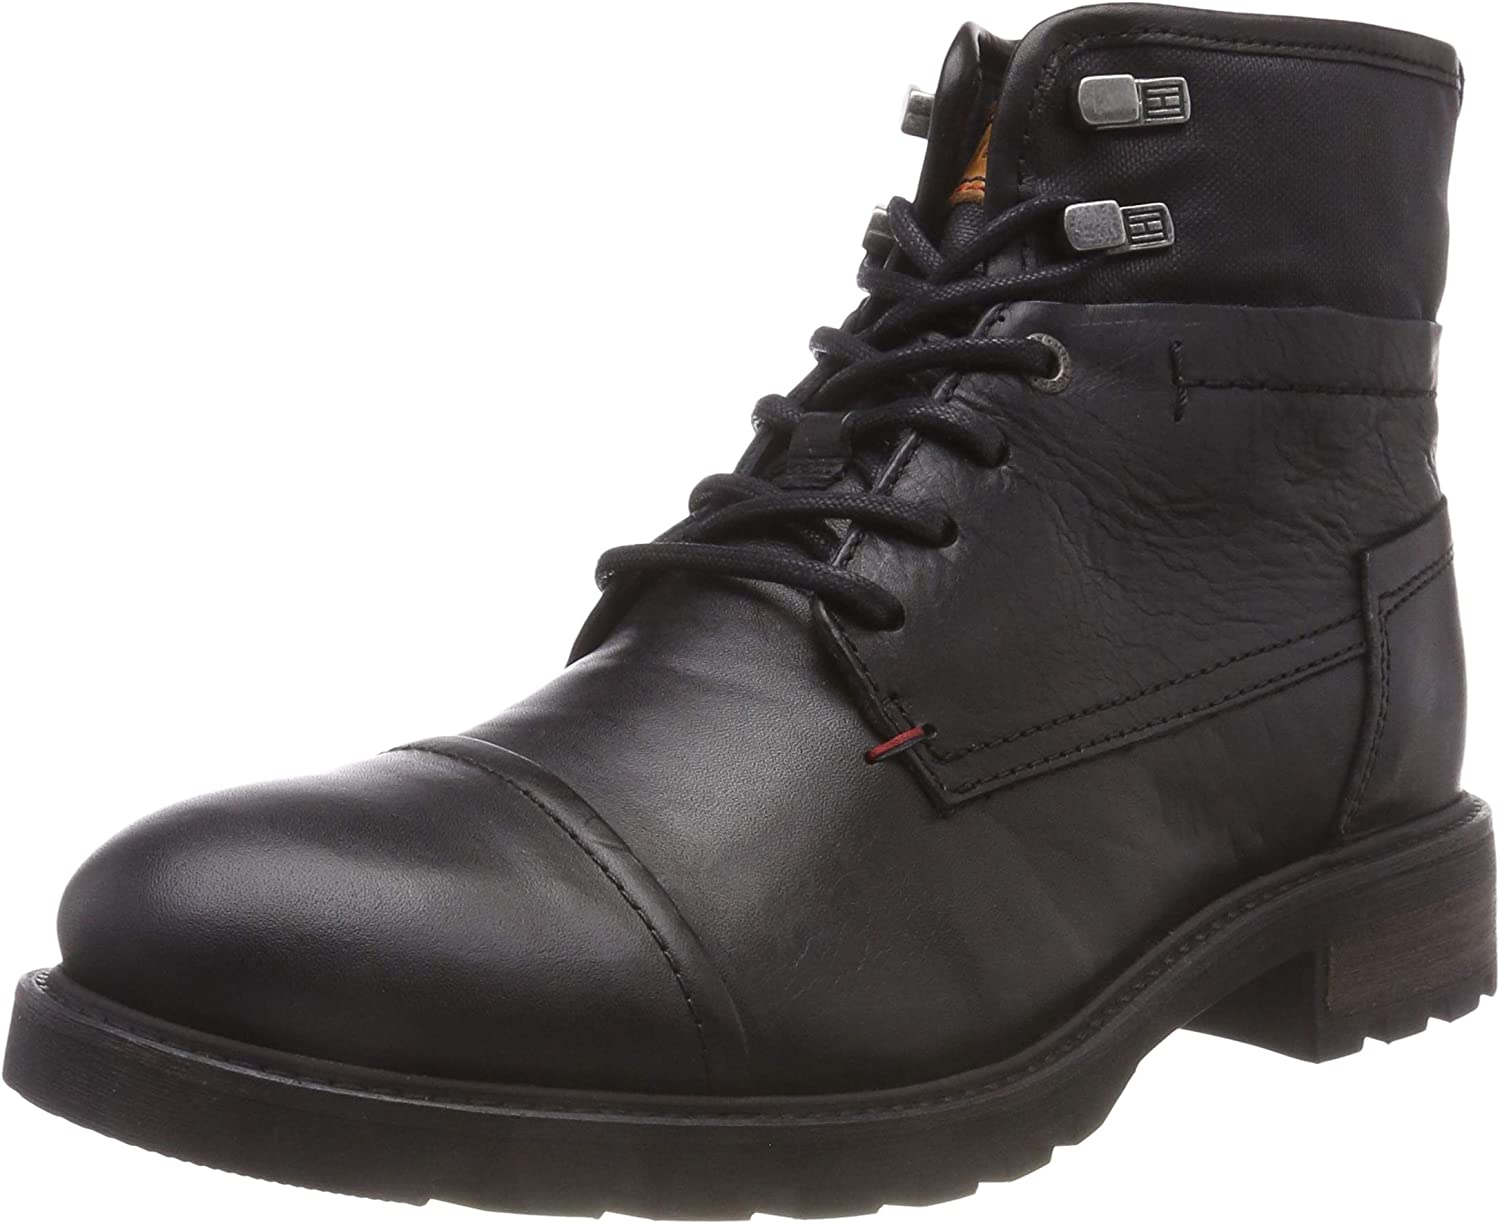 TALLA 41 EU. Tommy Hilfiger Winter Leather Textile Mix Boot, Botas Militar para Hombre